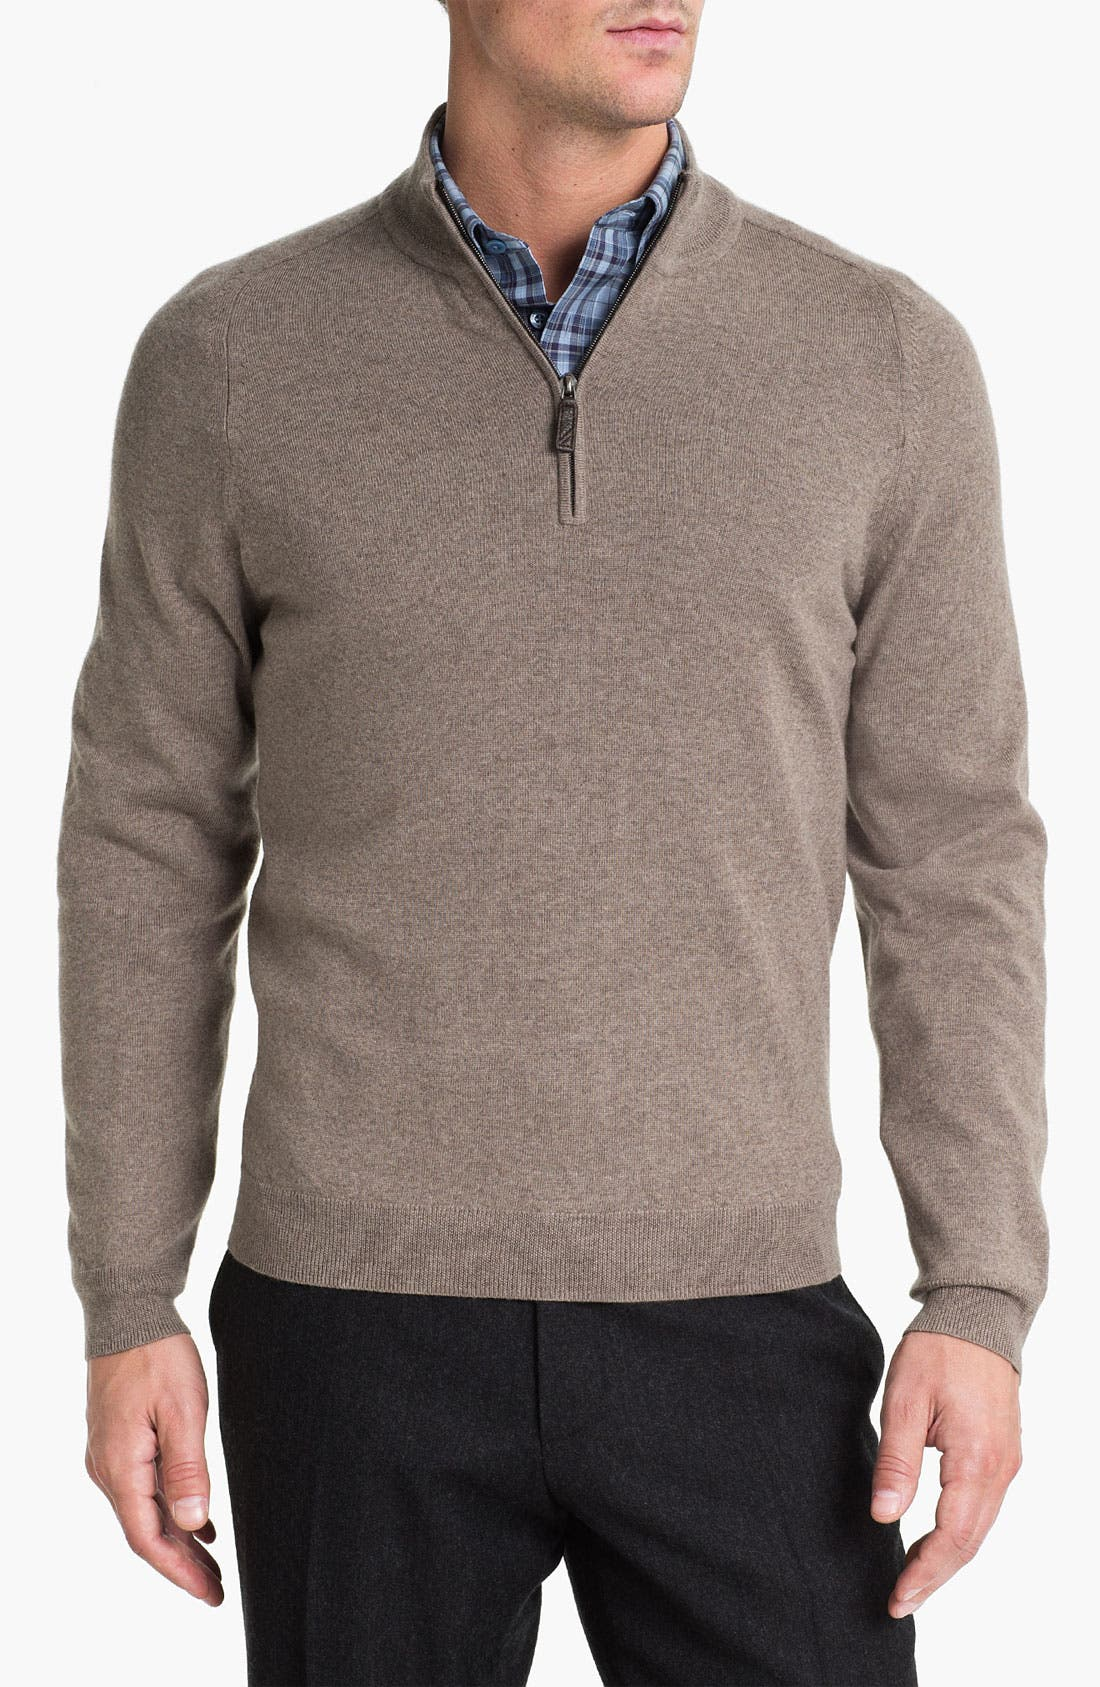 Alternate Image 1 Selected - Nordstrom Merino Wool Half Zip Sweater